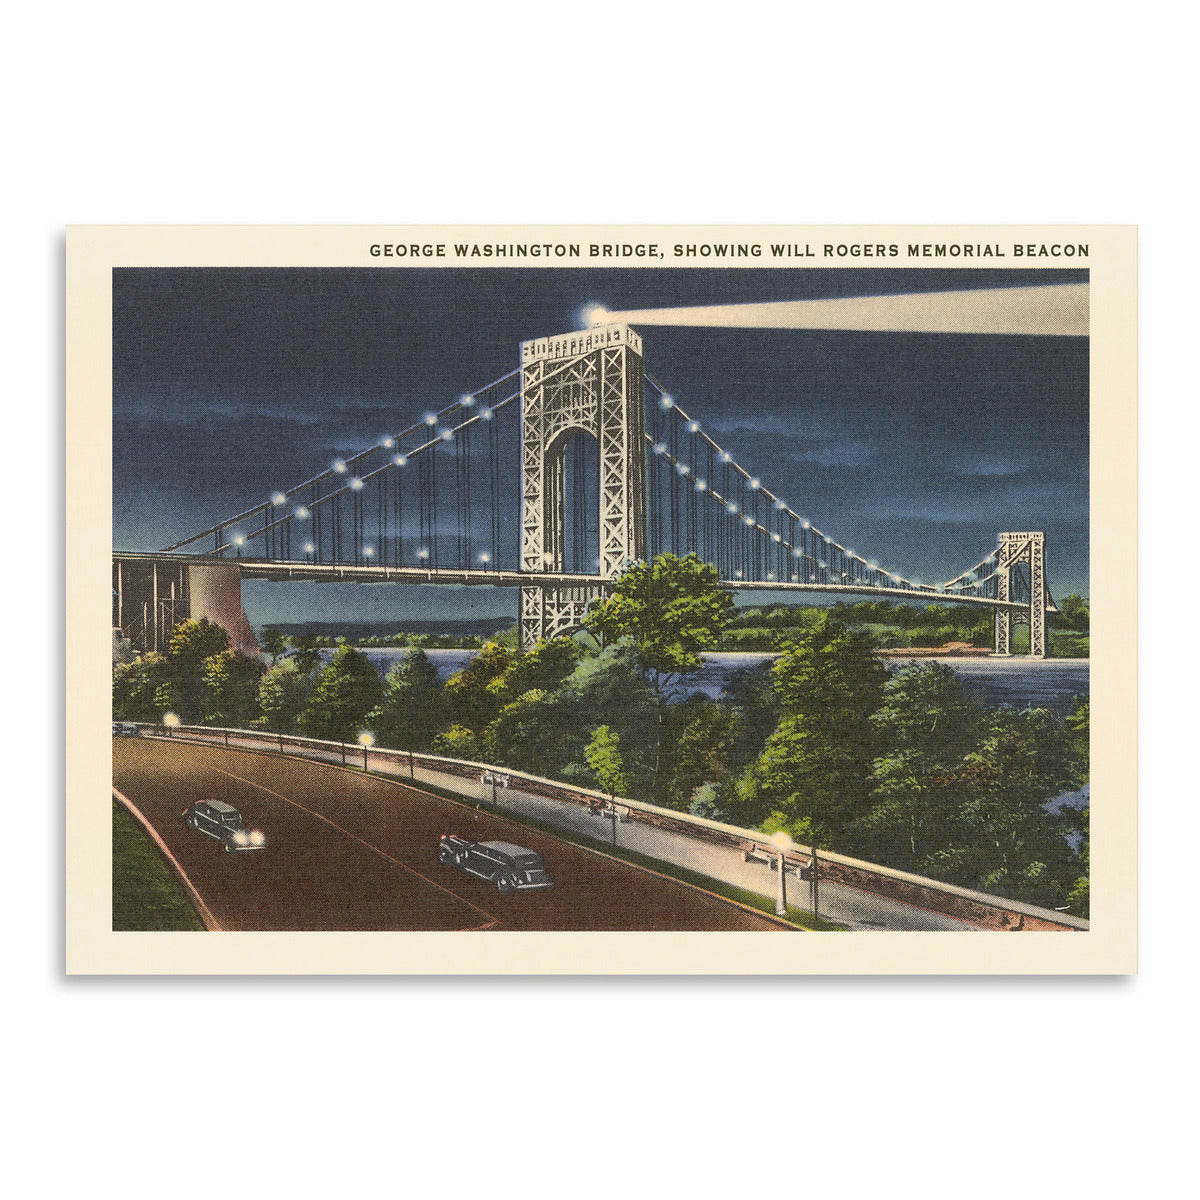 George Washington Bridge Hudson River by Found Image Press Art Print - Art Print - Americanflat